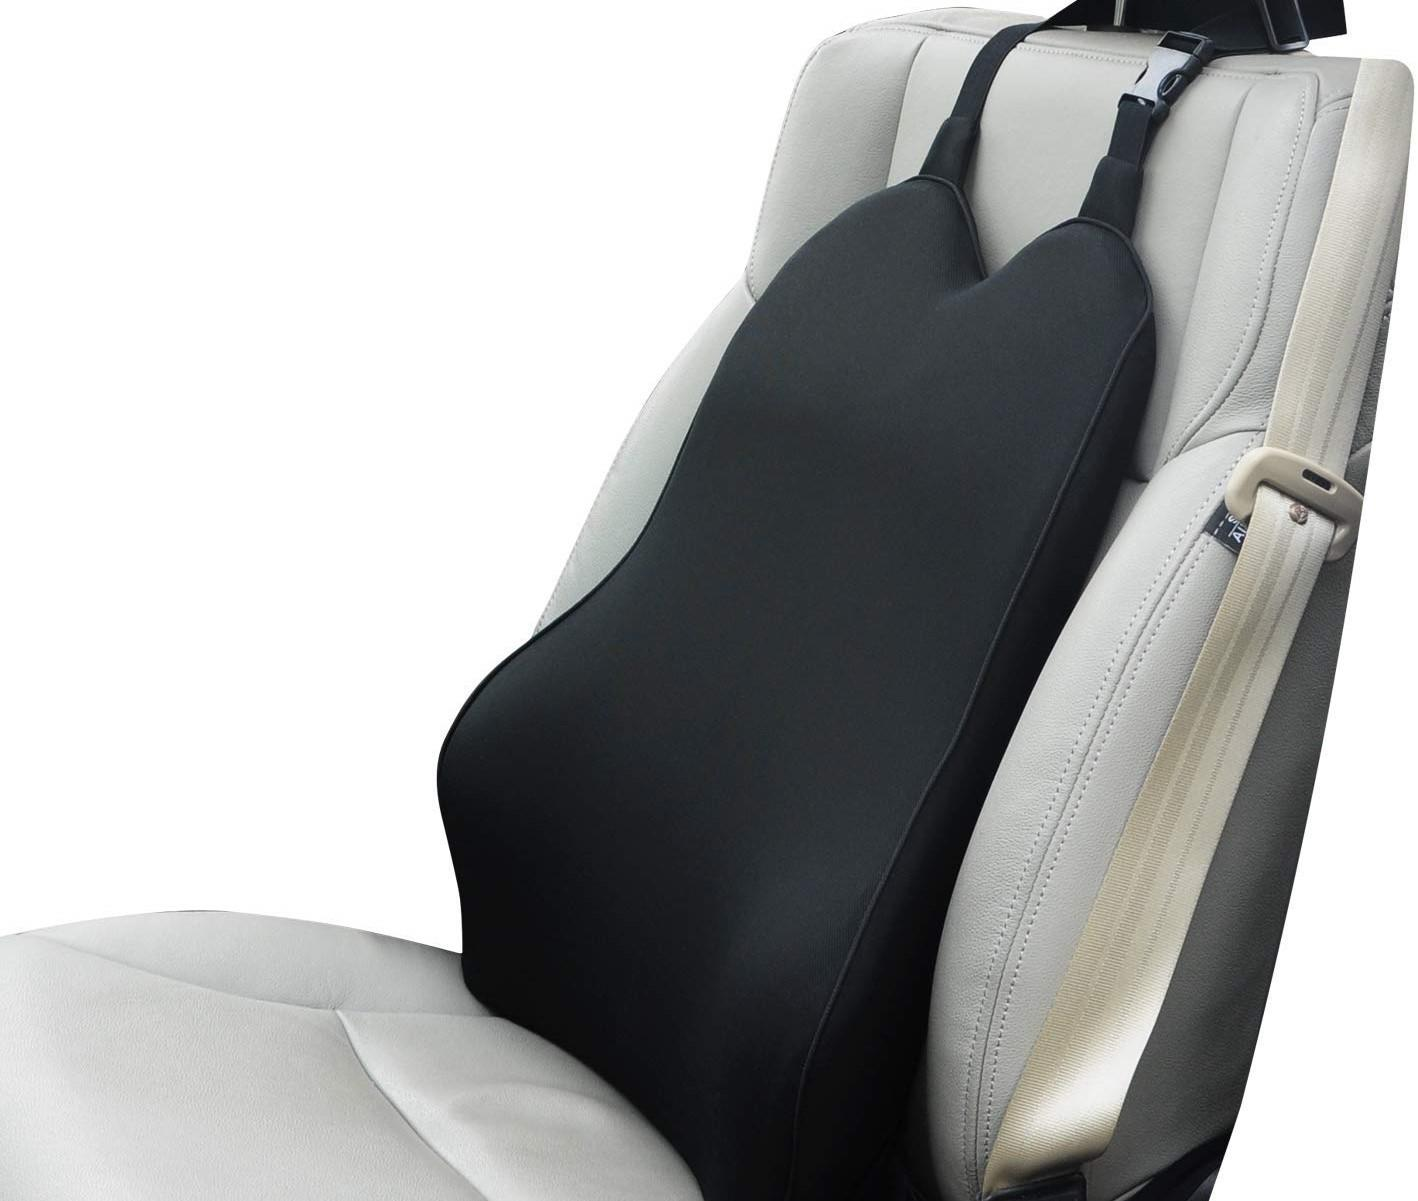 best car seat cushion for back pain